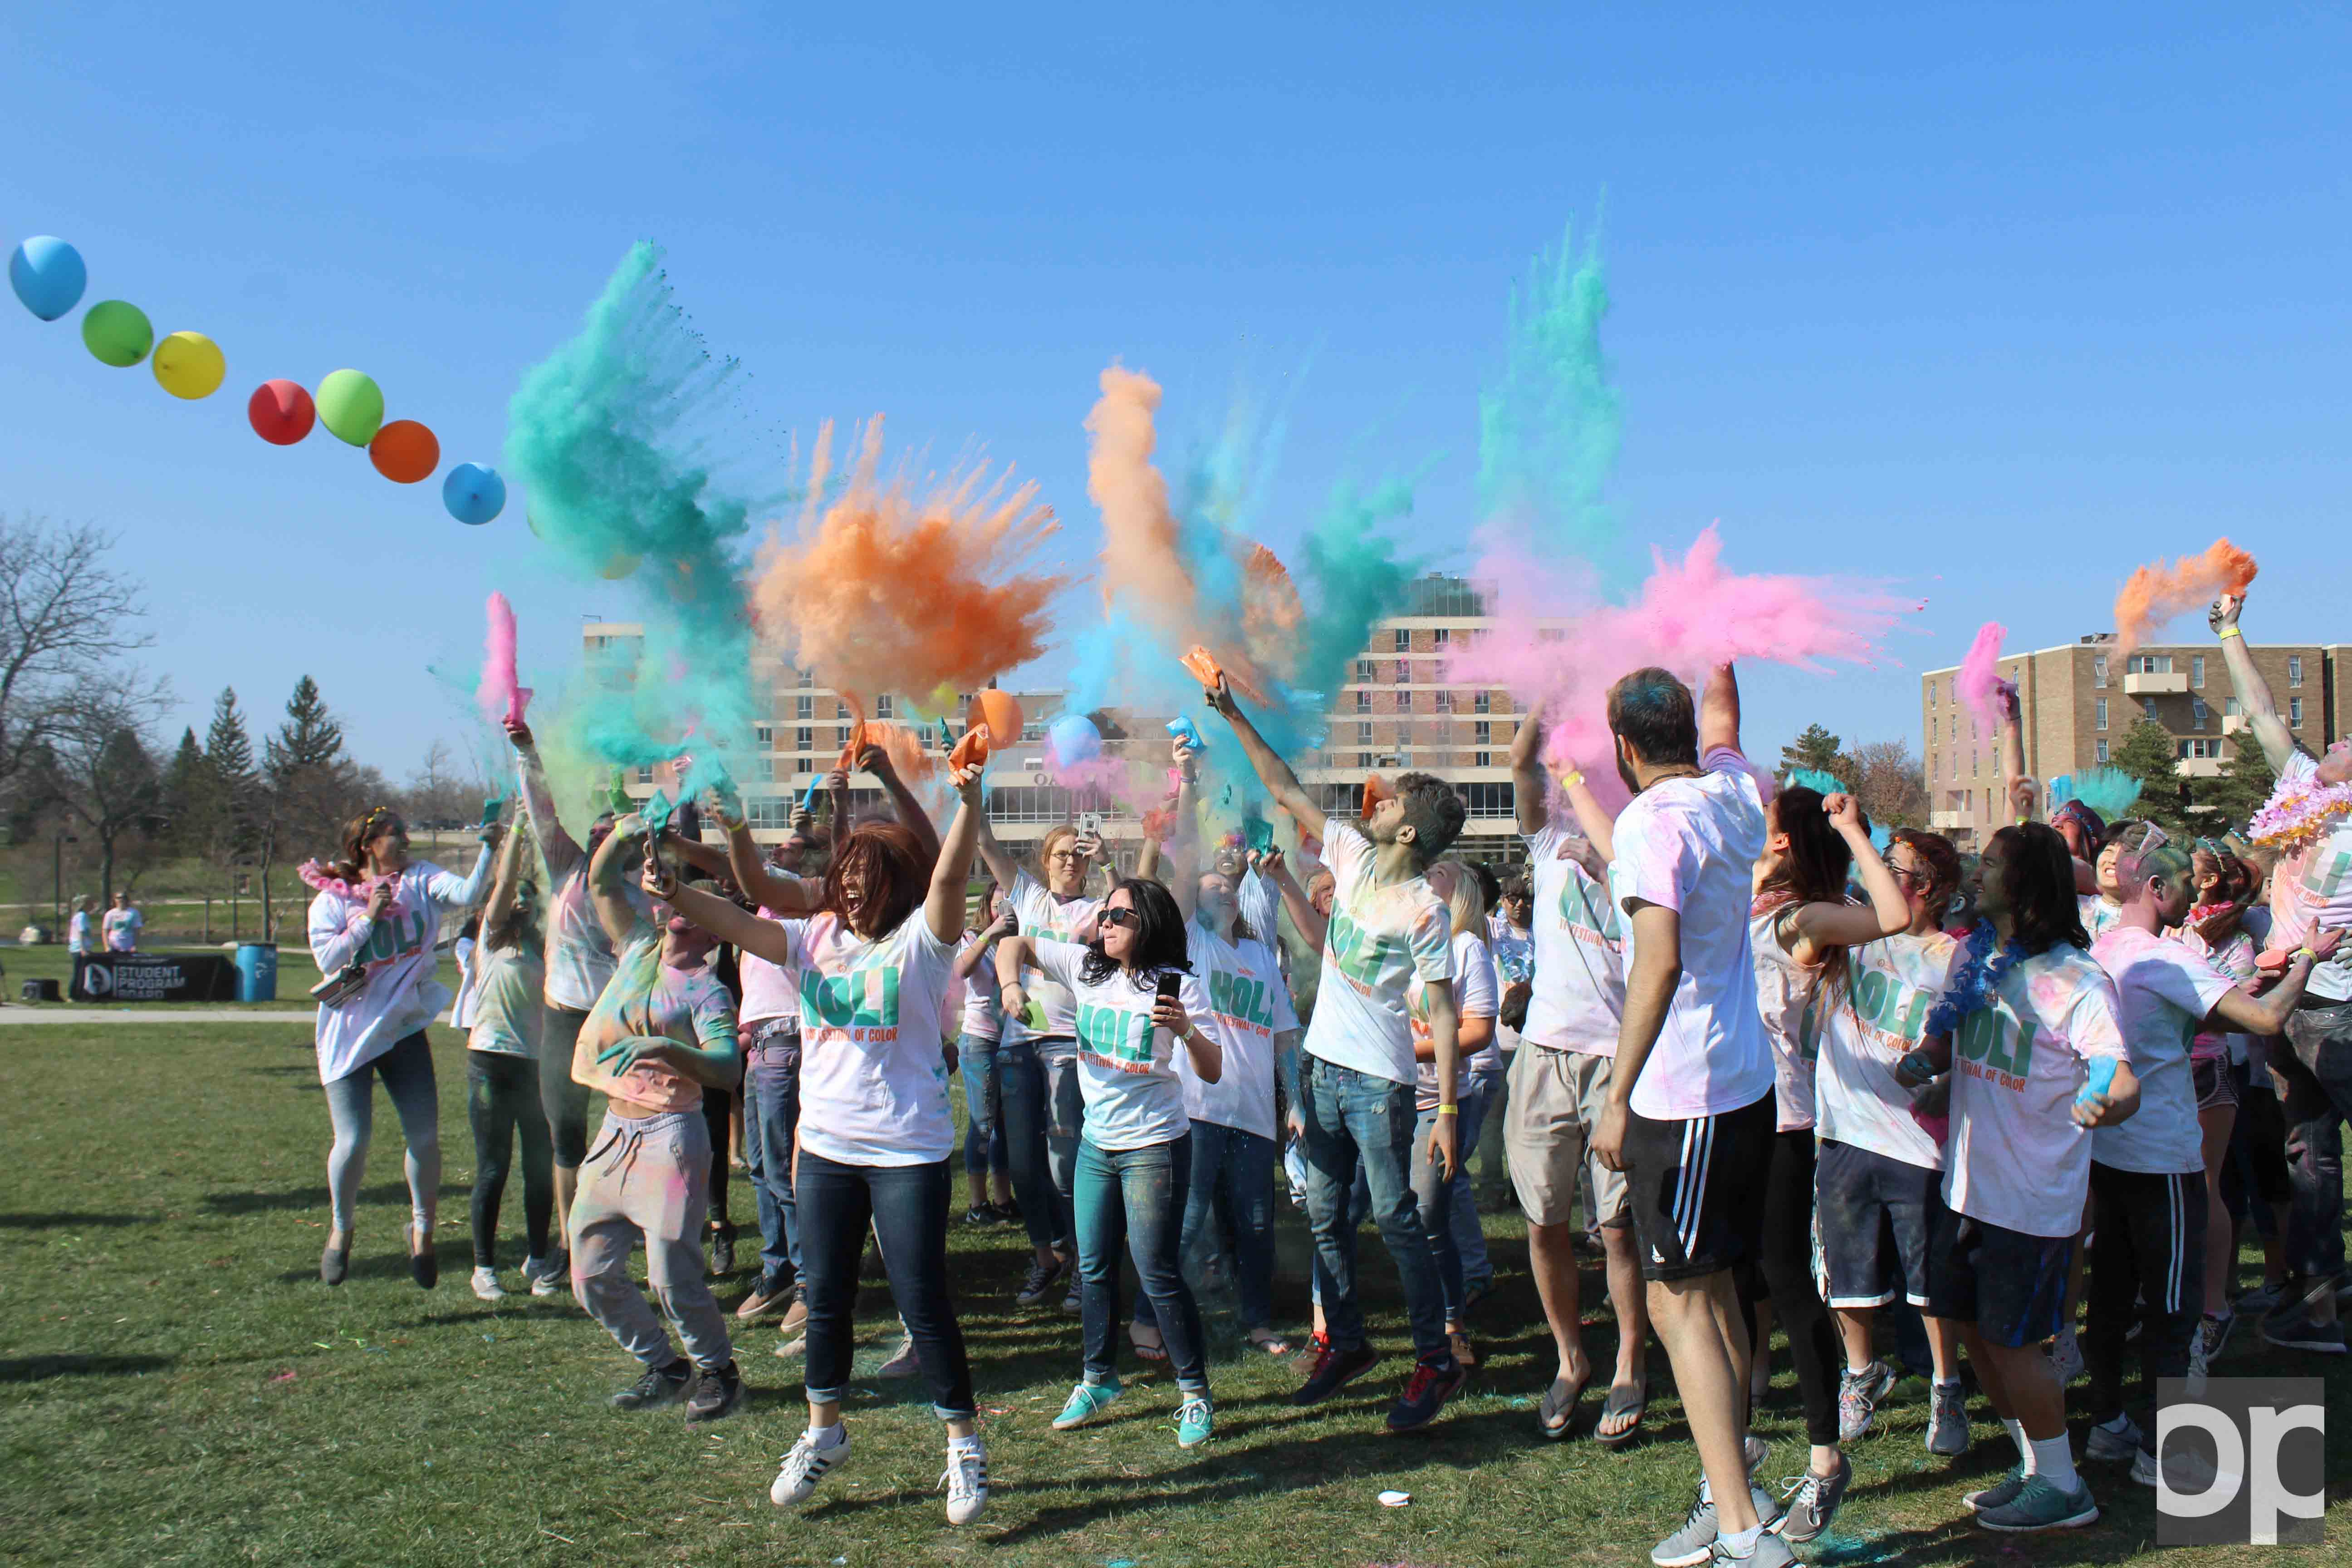 SPB hosted a Holi celebration, complete with music and balloons, to welcome the coming of spring on Friday, April 14.